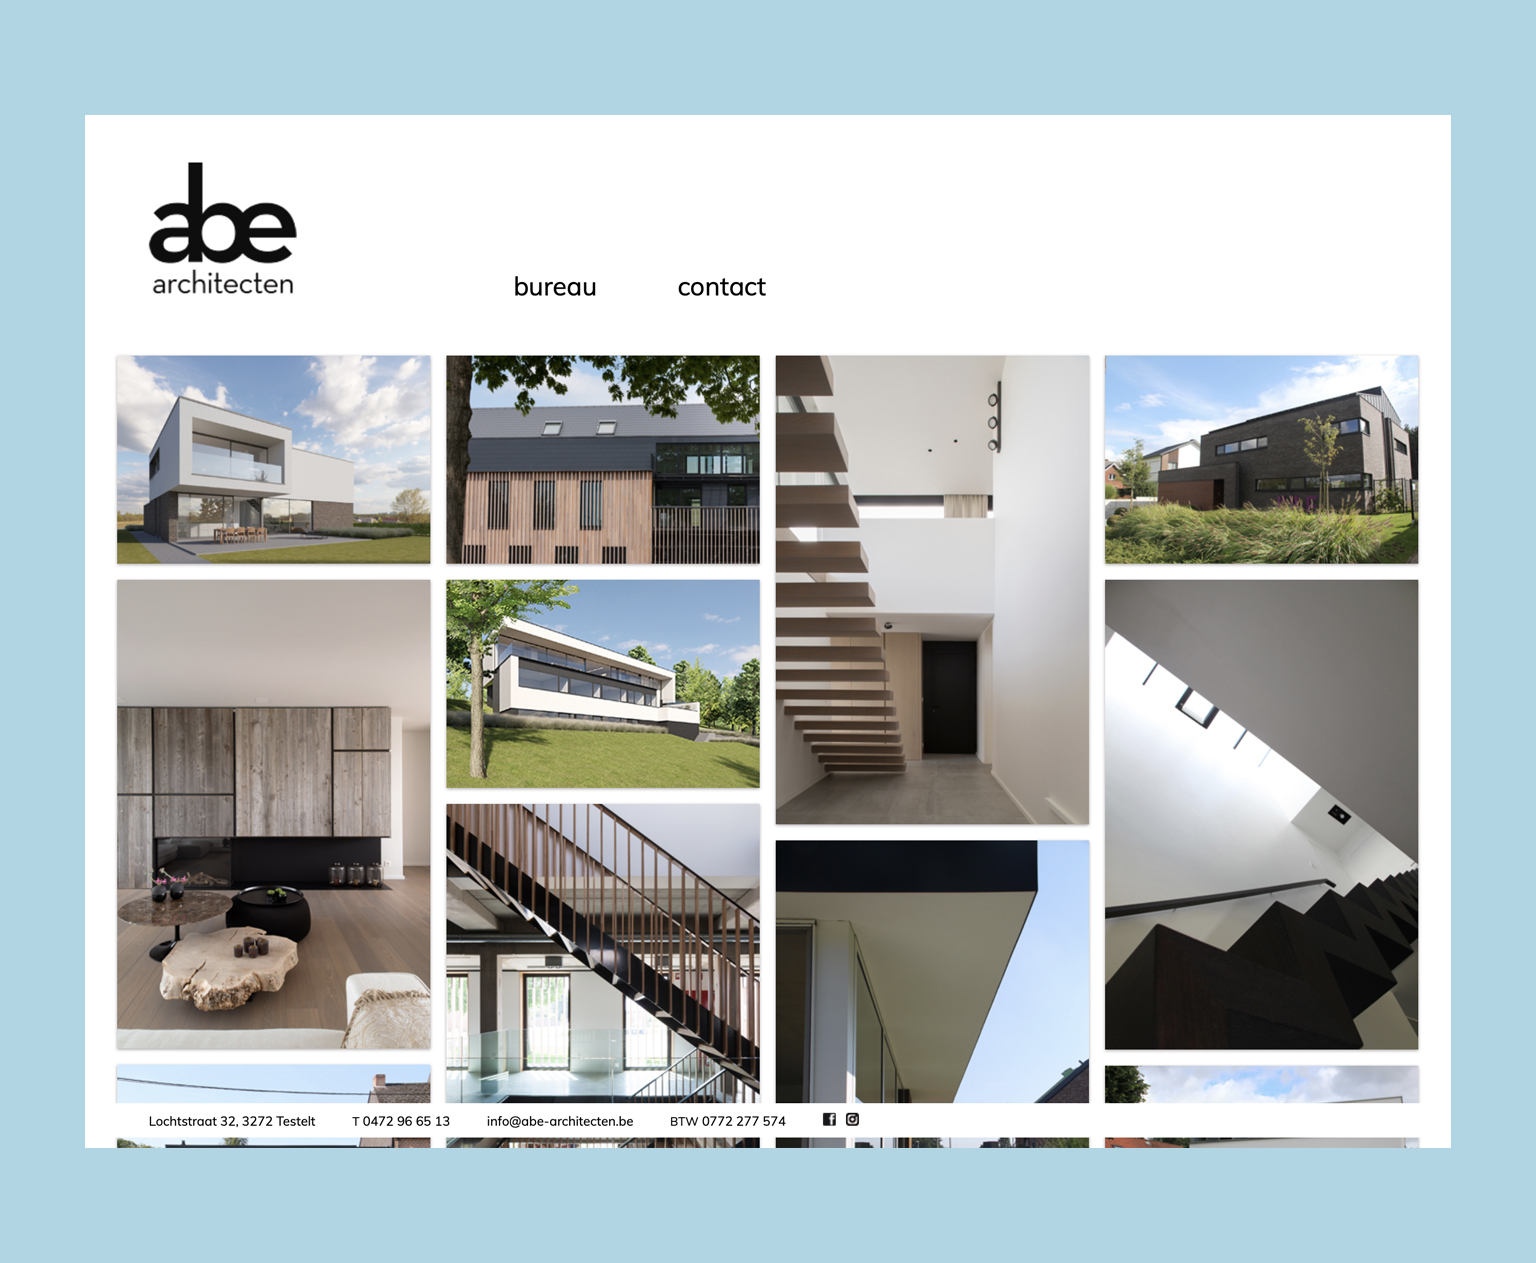 abe-architecten-website-2020